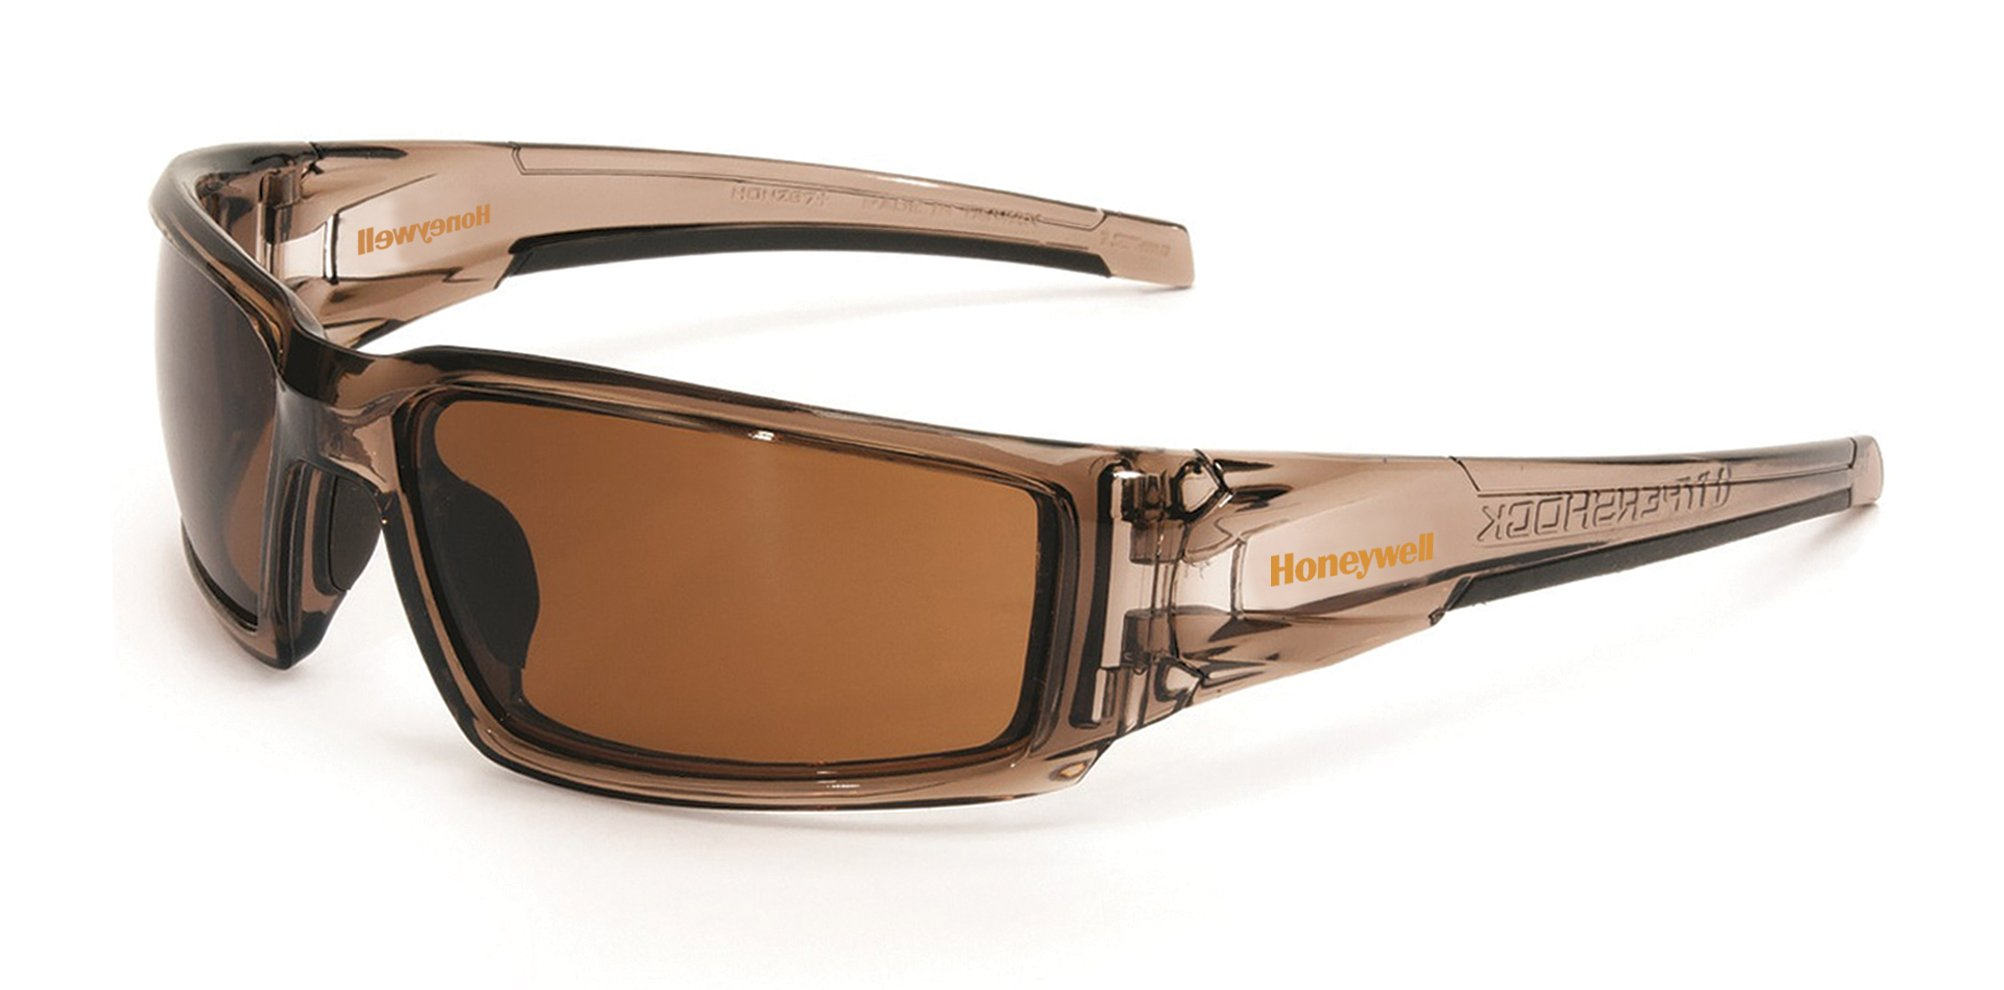 Uvex by Honeywell Hypershock Safety Glasses, Brown Frame with Espresso Polarized Lens & Anti-Scratch Hardcoat (S2969)